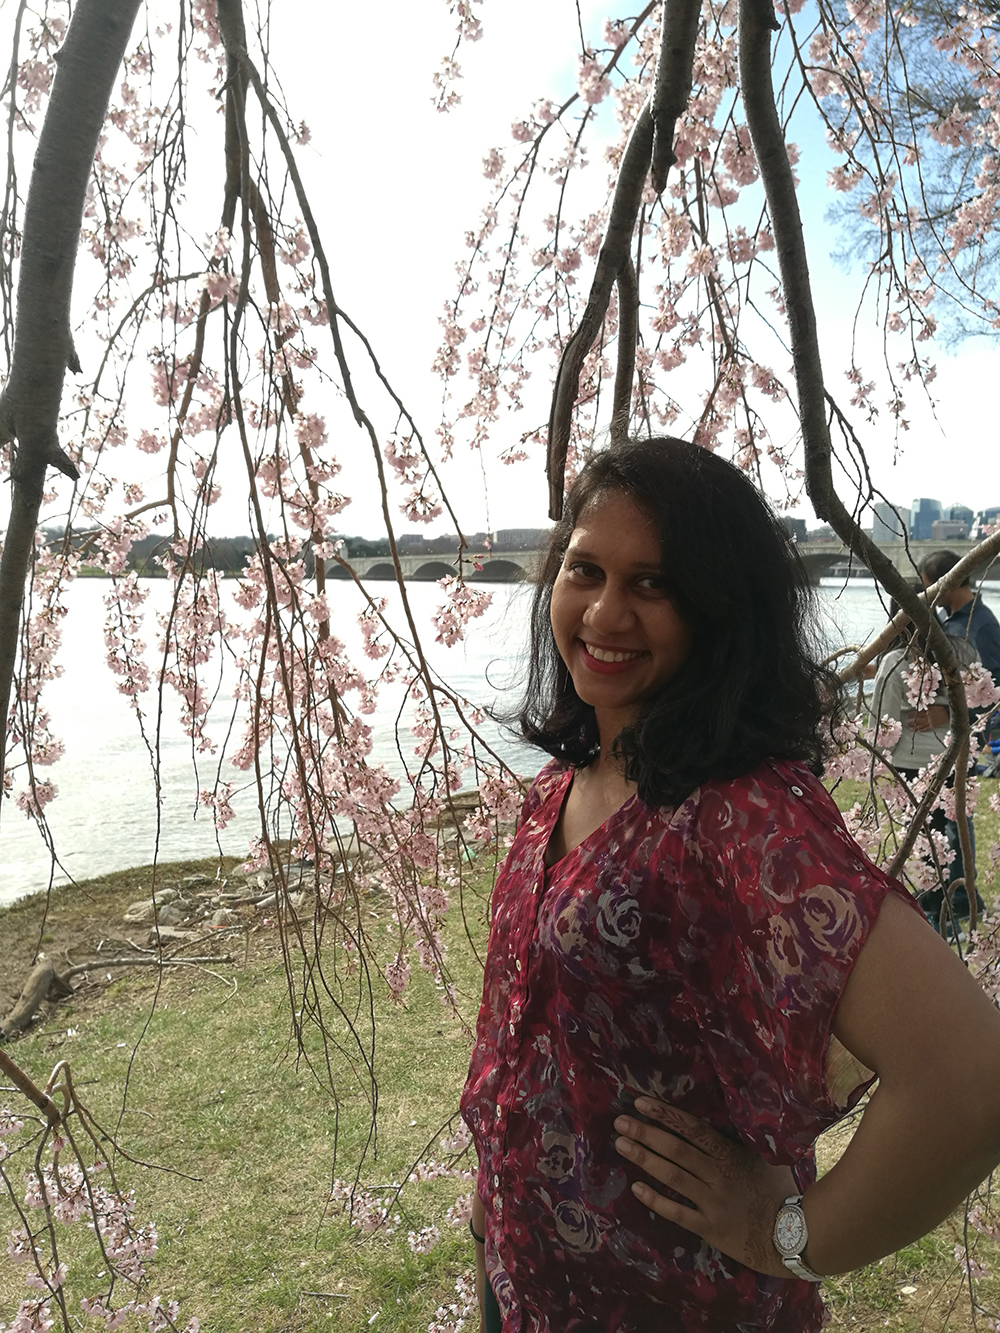 Priya Lewis in front of cherry blossom trees